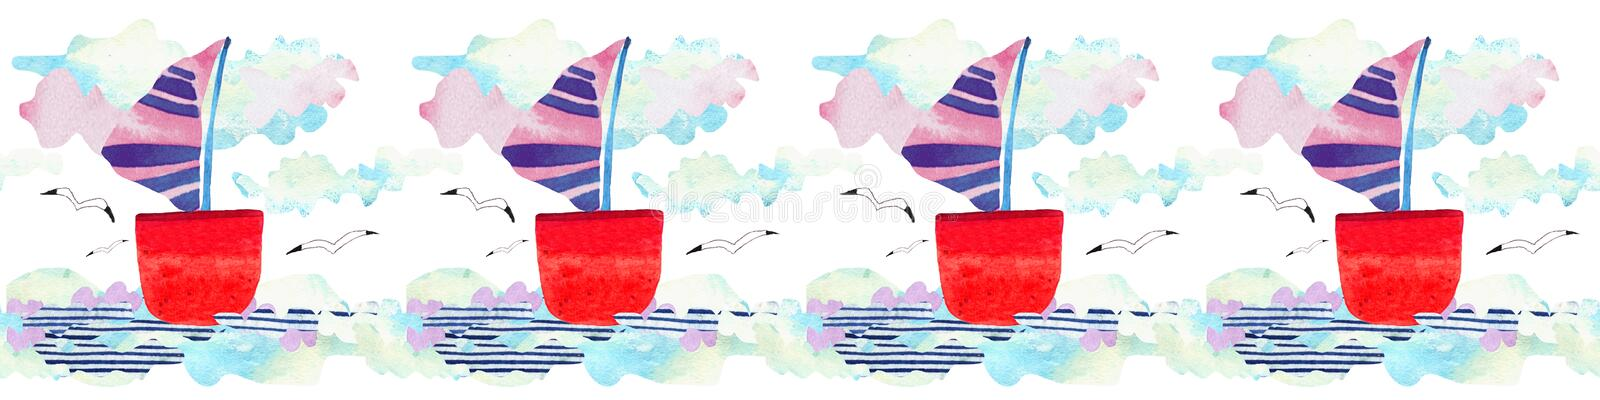 Watercolor Sea waves, ship and seagull in paper art style. Travel concept illustration. Sea waves, ship and seagull in paper art style. Travel concept stock images